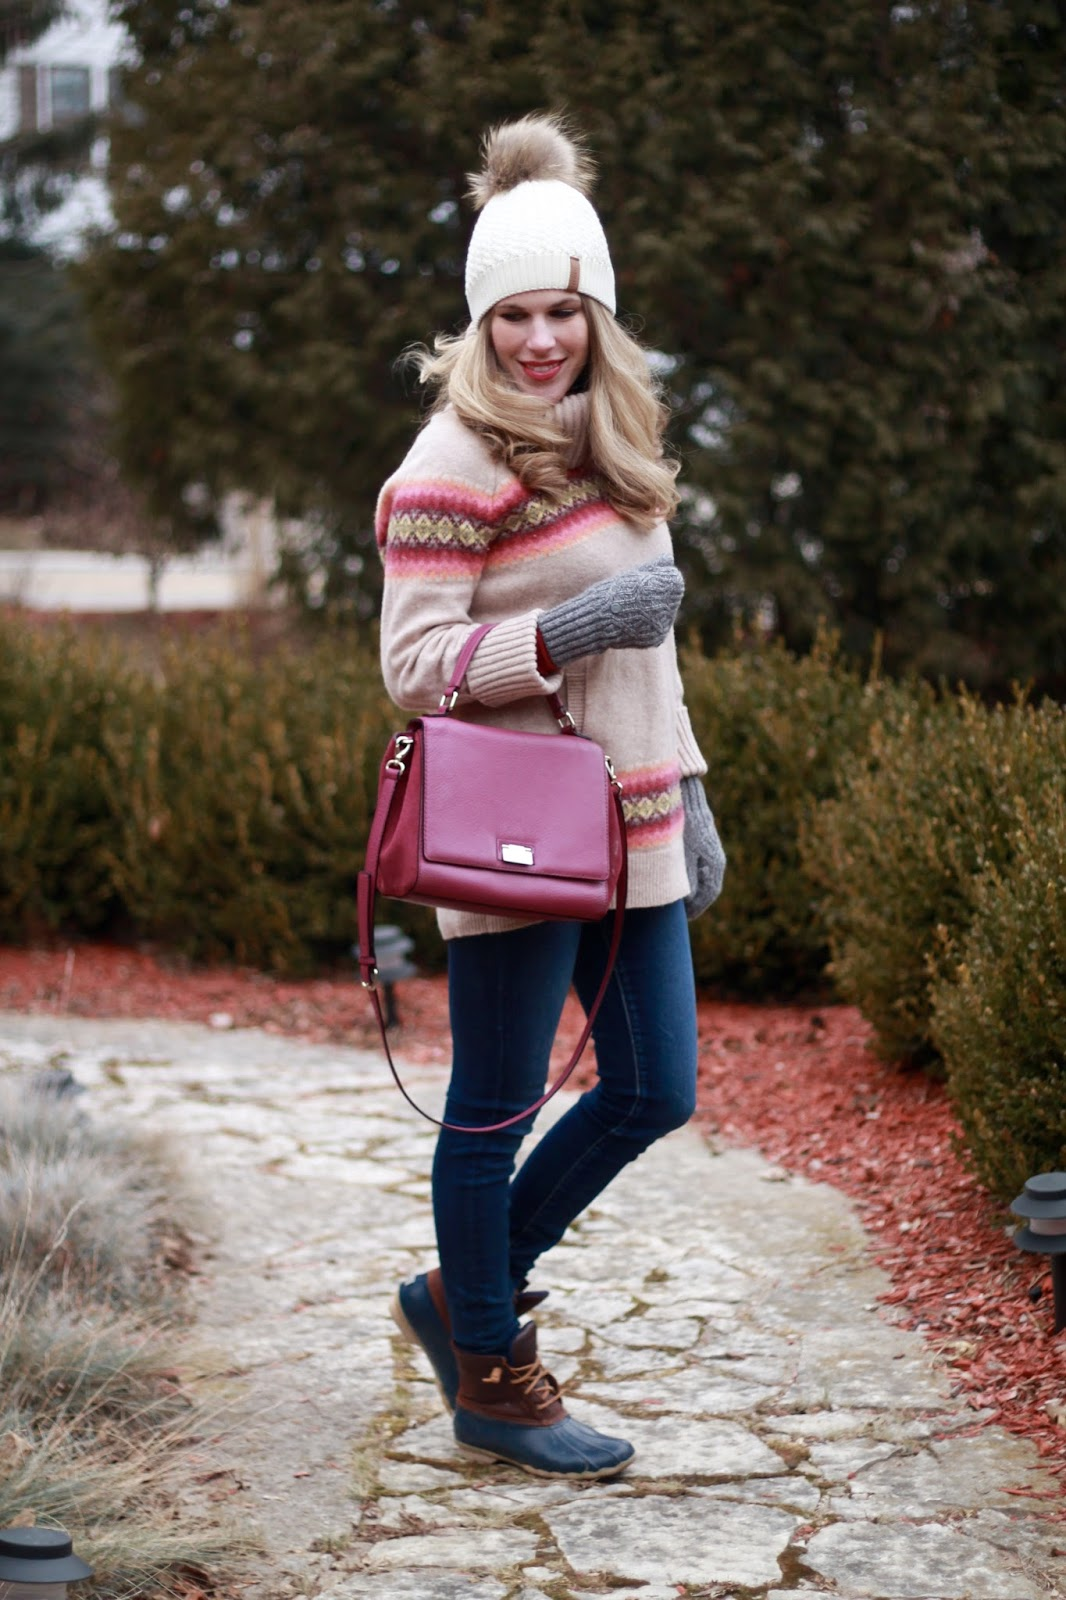 fair isle tunic sweater, AEO skinny jeans, Sperry duck boots, berry plum Kate Spade crossbody bag, white fur pom pom beanie